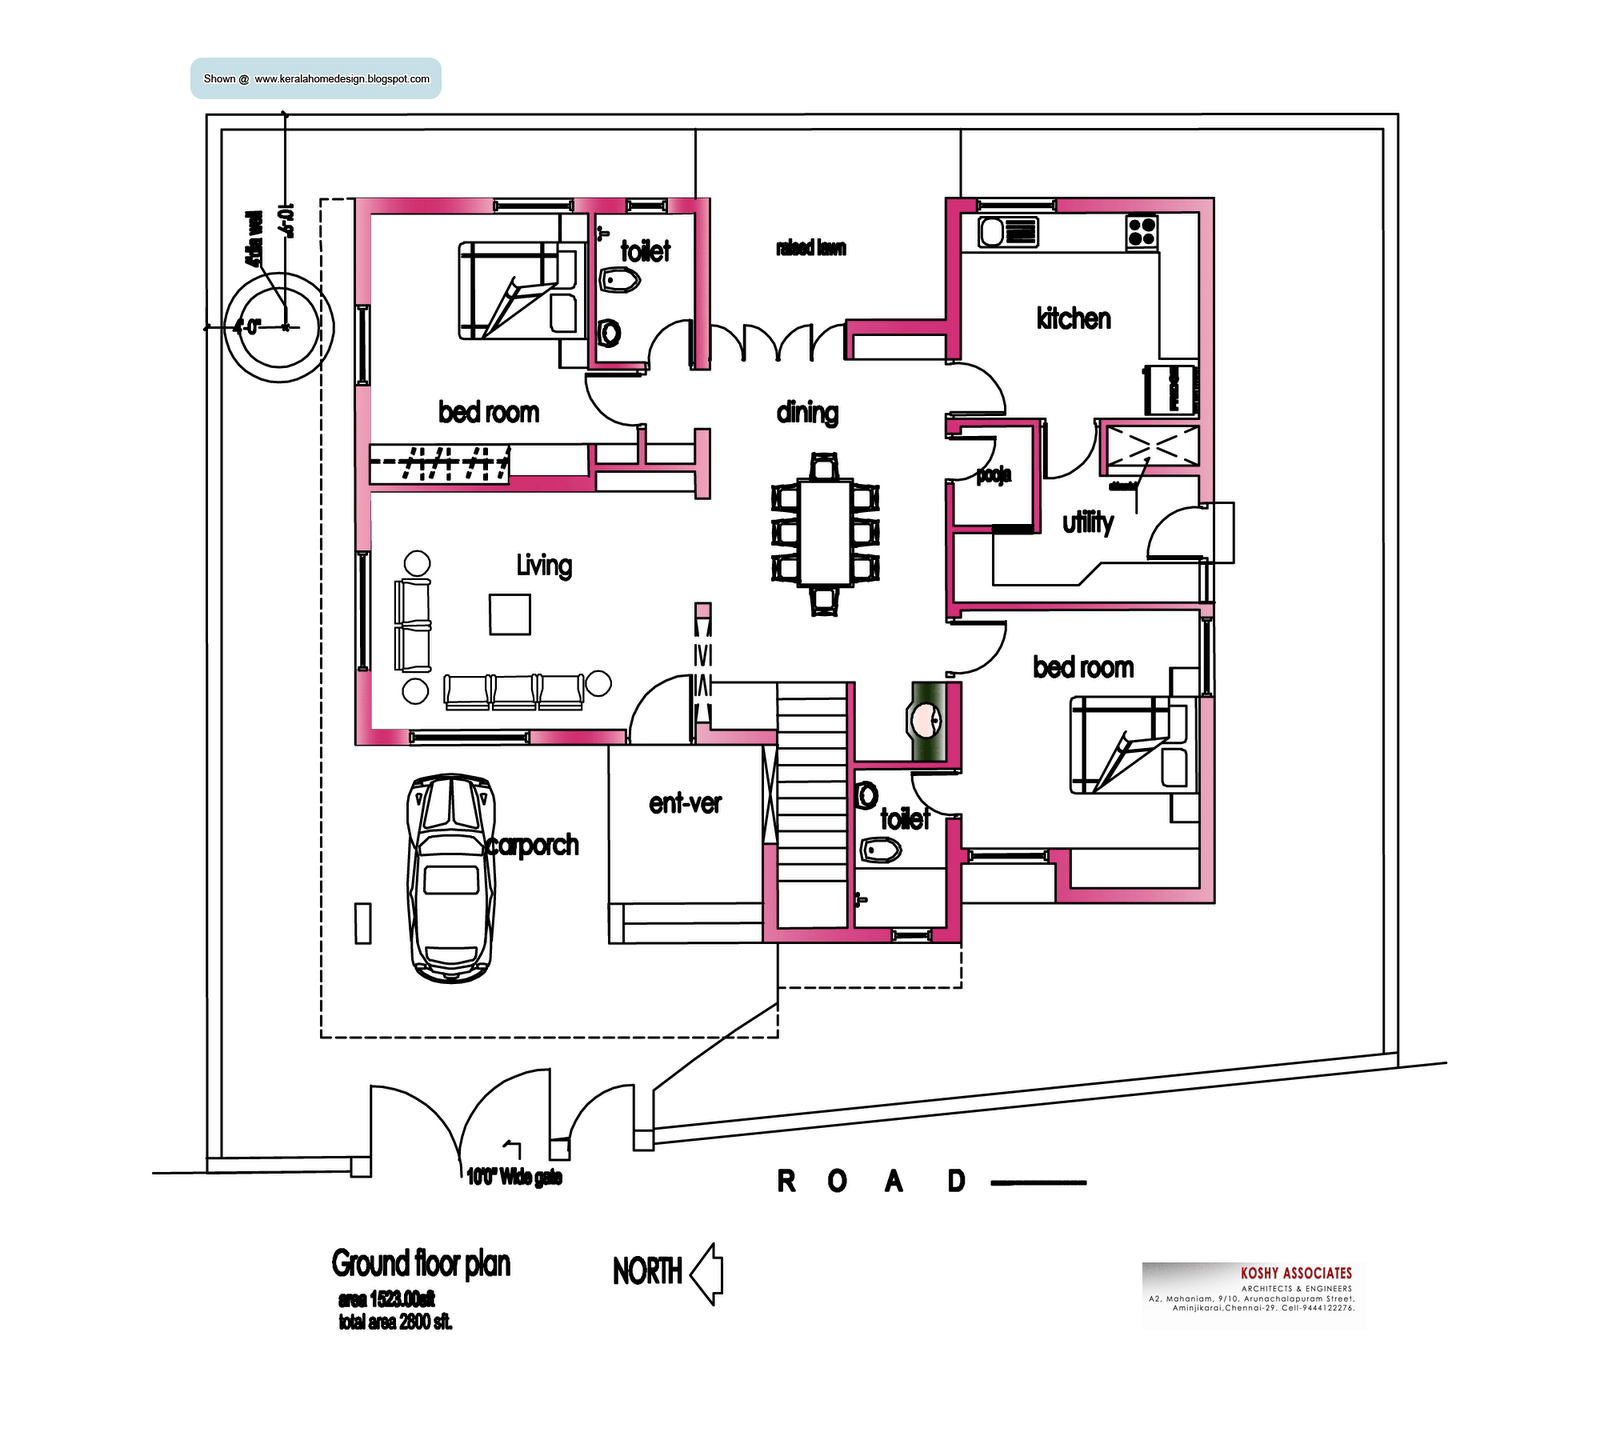 Image detail for modern house plan 2800 sq ft kerala for House plans with photos